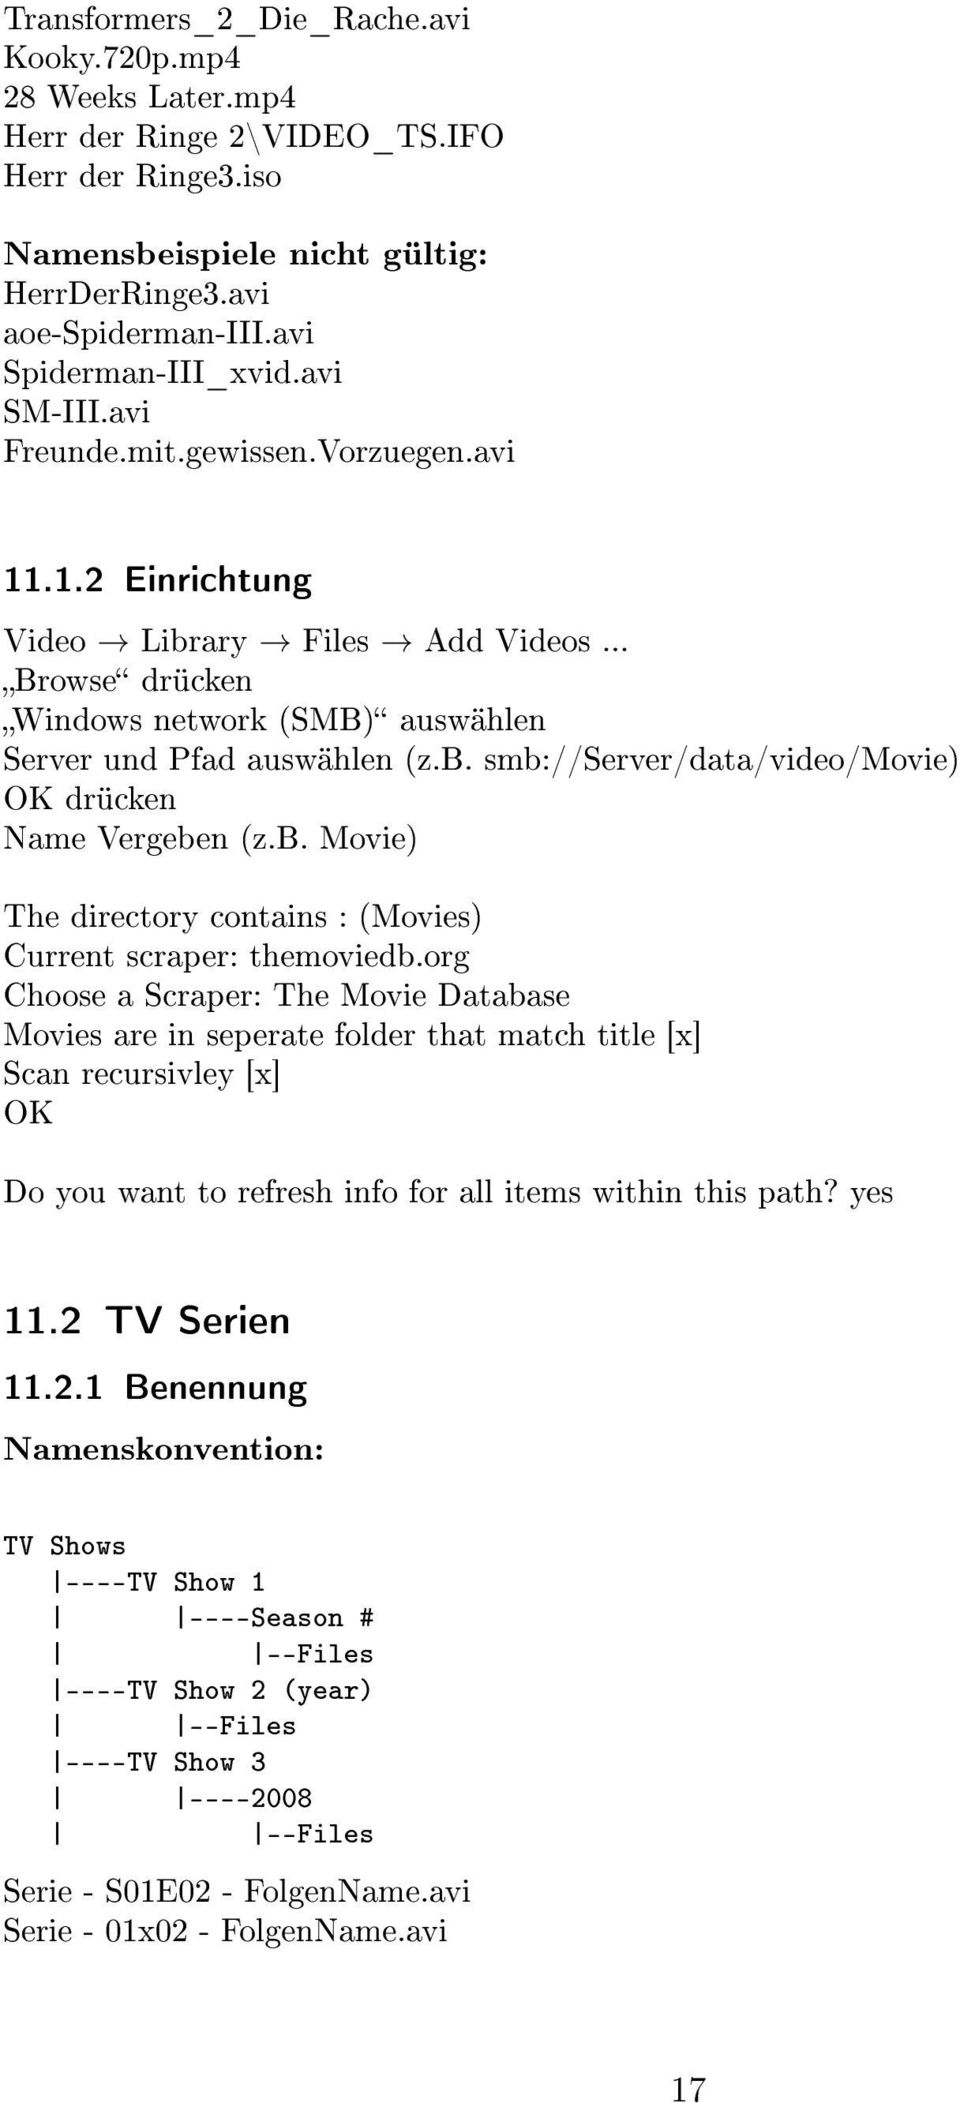 b. smb://server/data/video/movie) OK drücken Name Vergeben (z.b. Movie) The directory contains : (Movies) Current scraper: themoviedb.